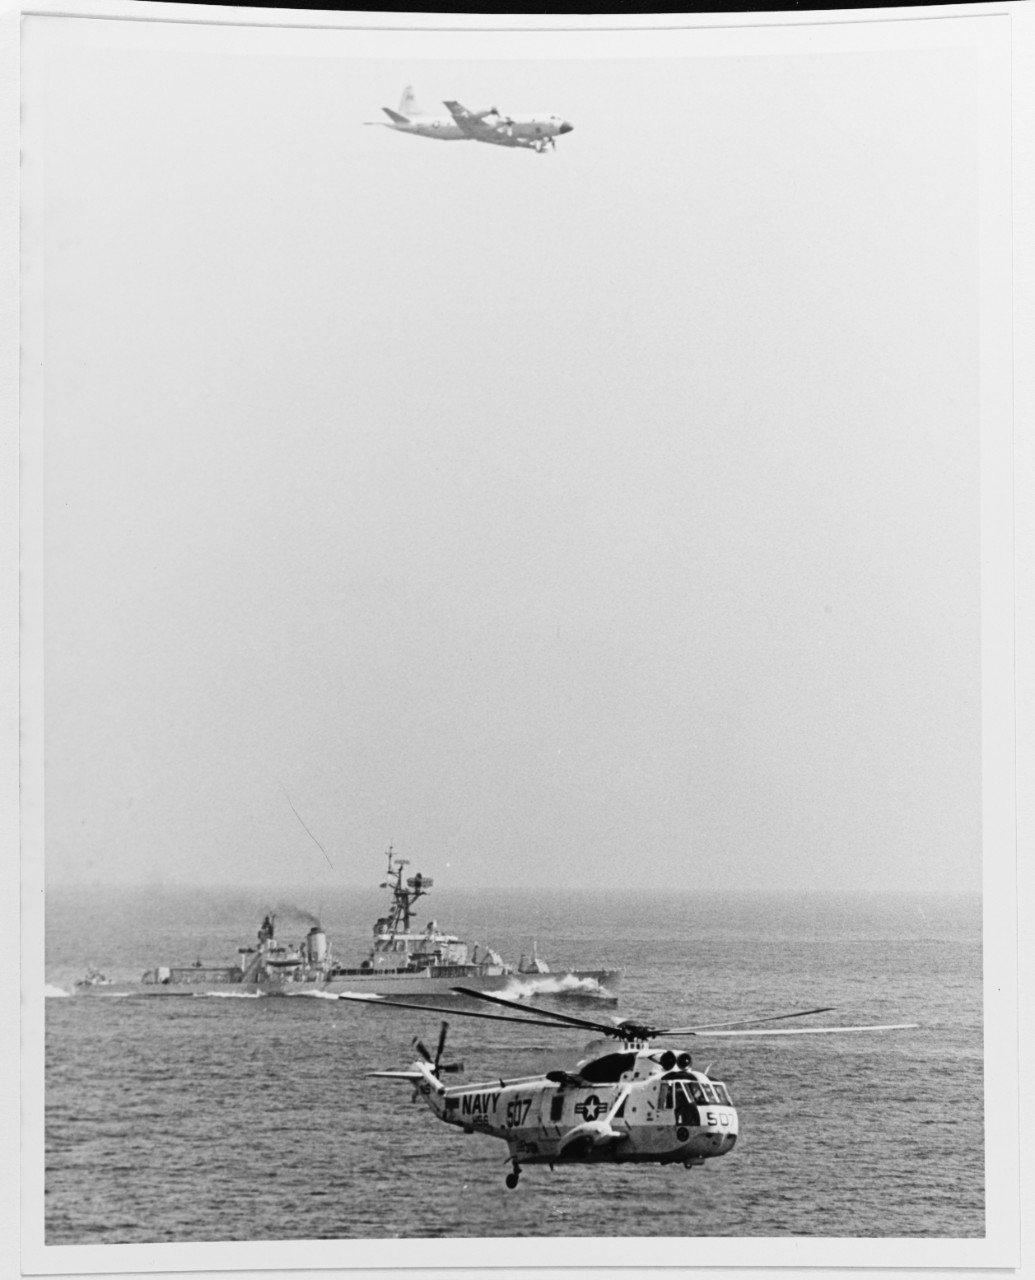 A P-3 Orion Anti-Submarine Warfare Plane, USS BUCK (DD-761), and a SH-3 Sea King Anti-Submarine Warfare Helicopter